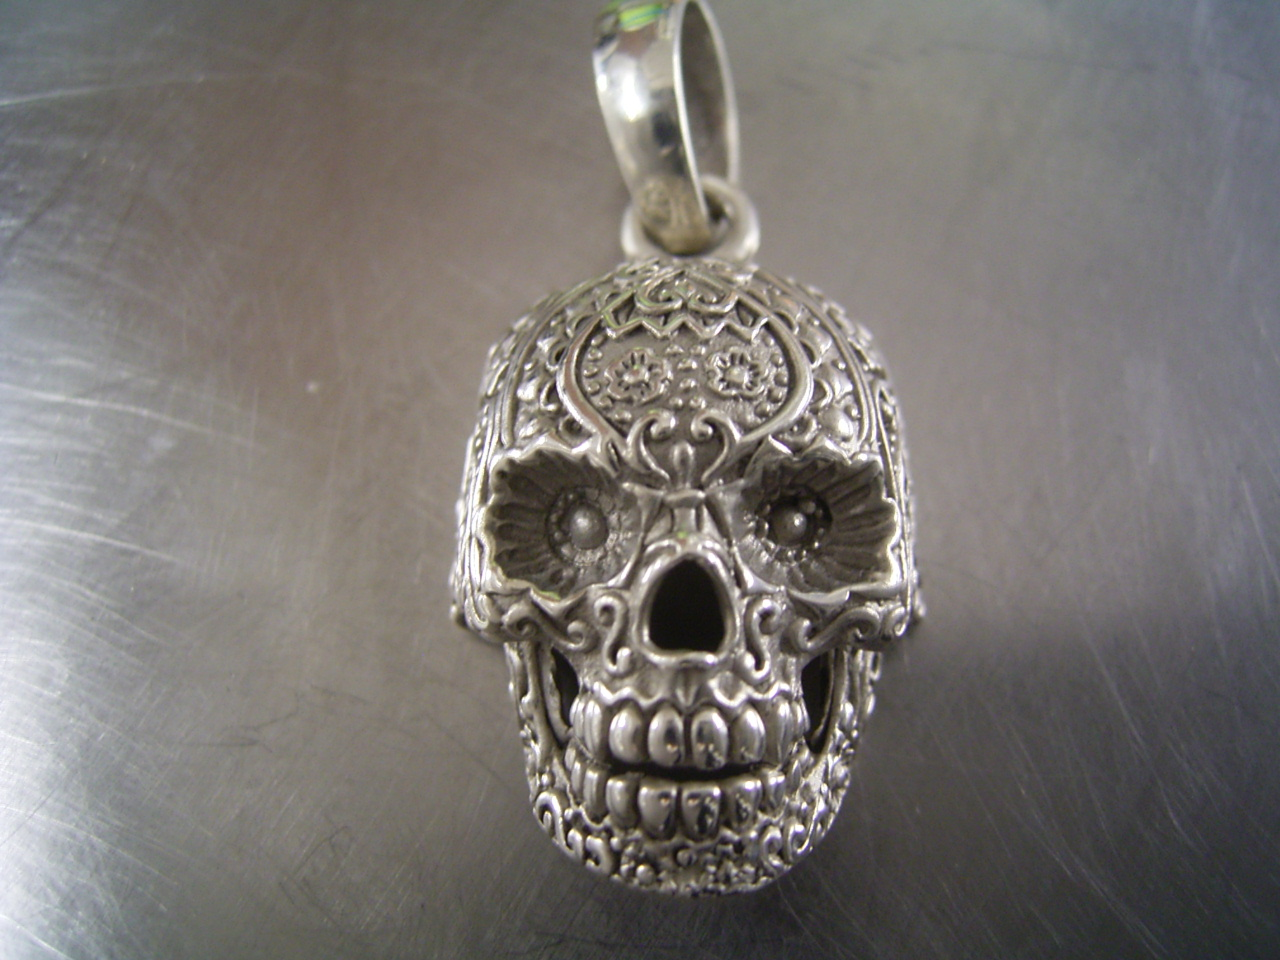 tattoocandy sugar gold cartergore pendant products with flowers skull